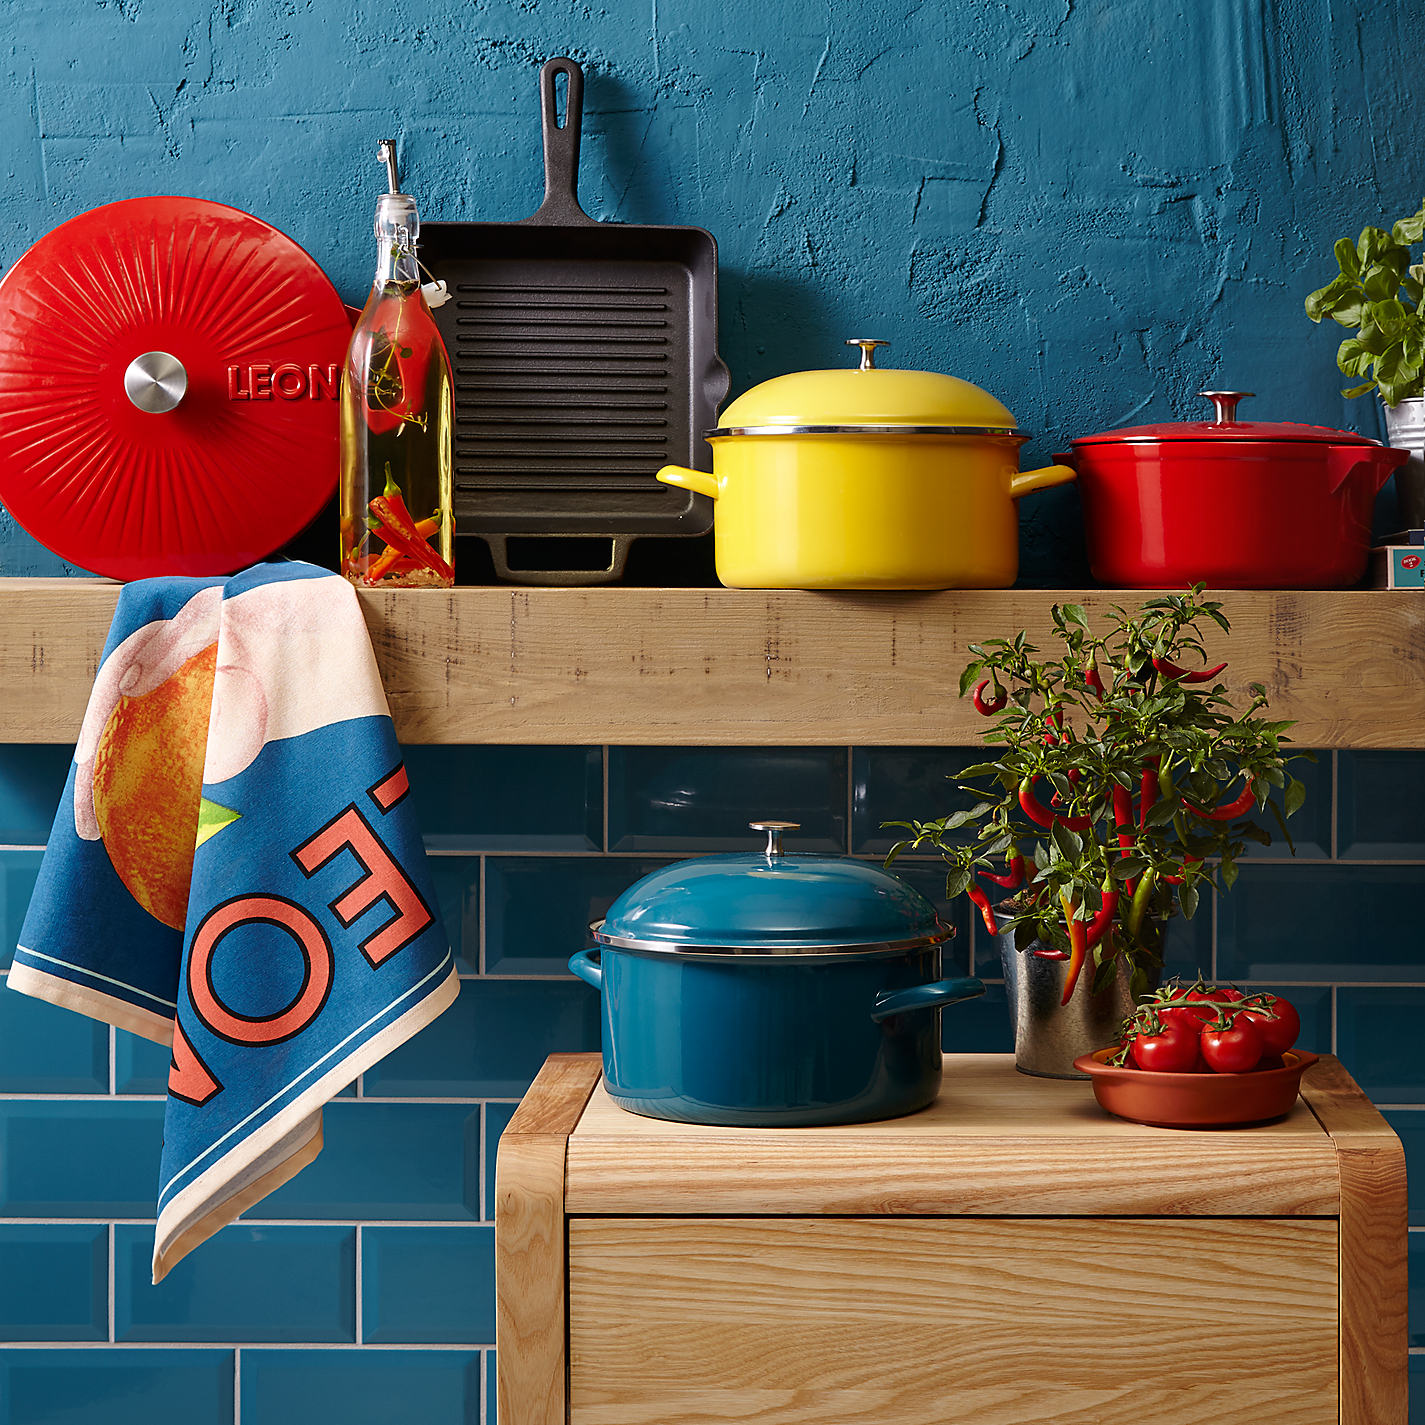 kitchen collections john lewis buy leon cookware online at johnlewis com